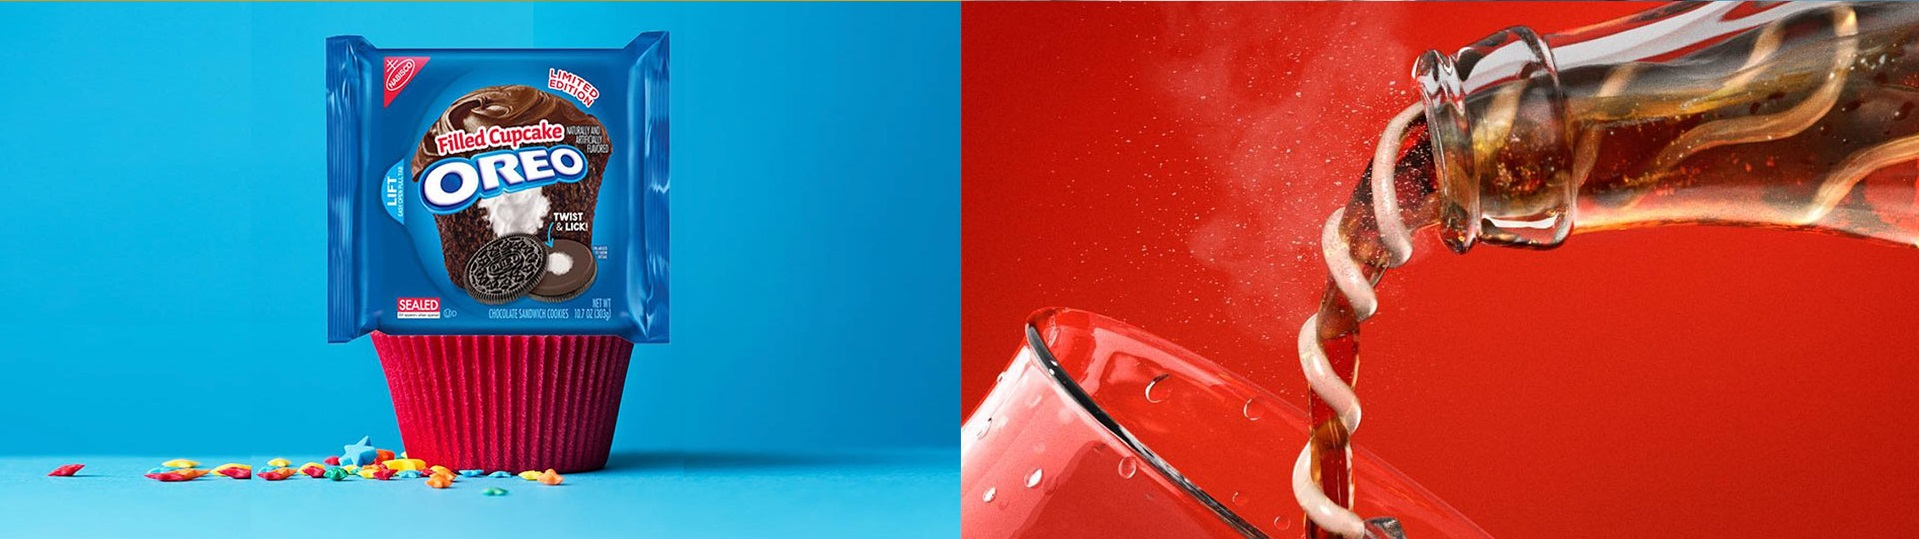 Oreo and Coca-Cola have bright, signature colors that they use in almost all of their collateral